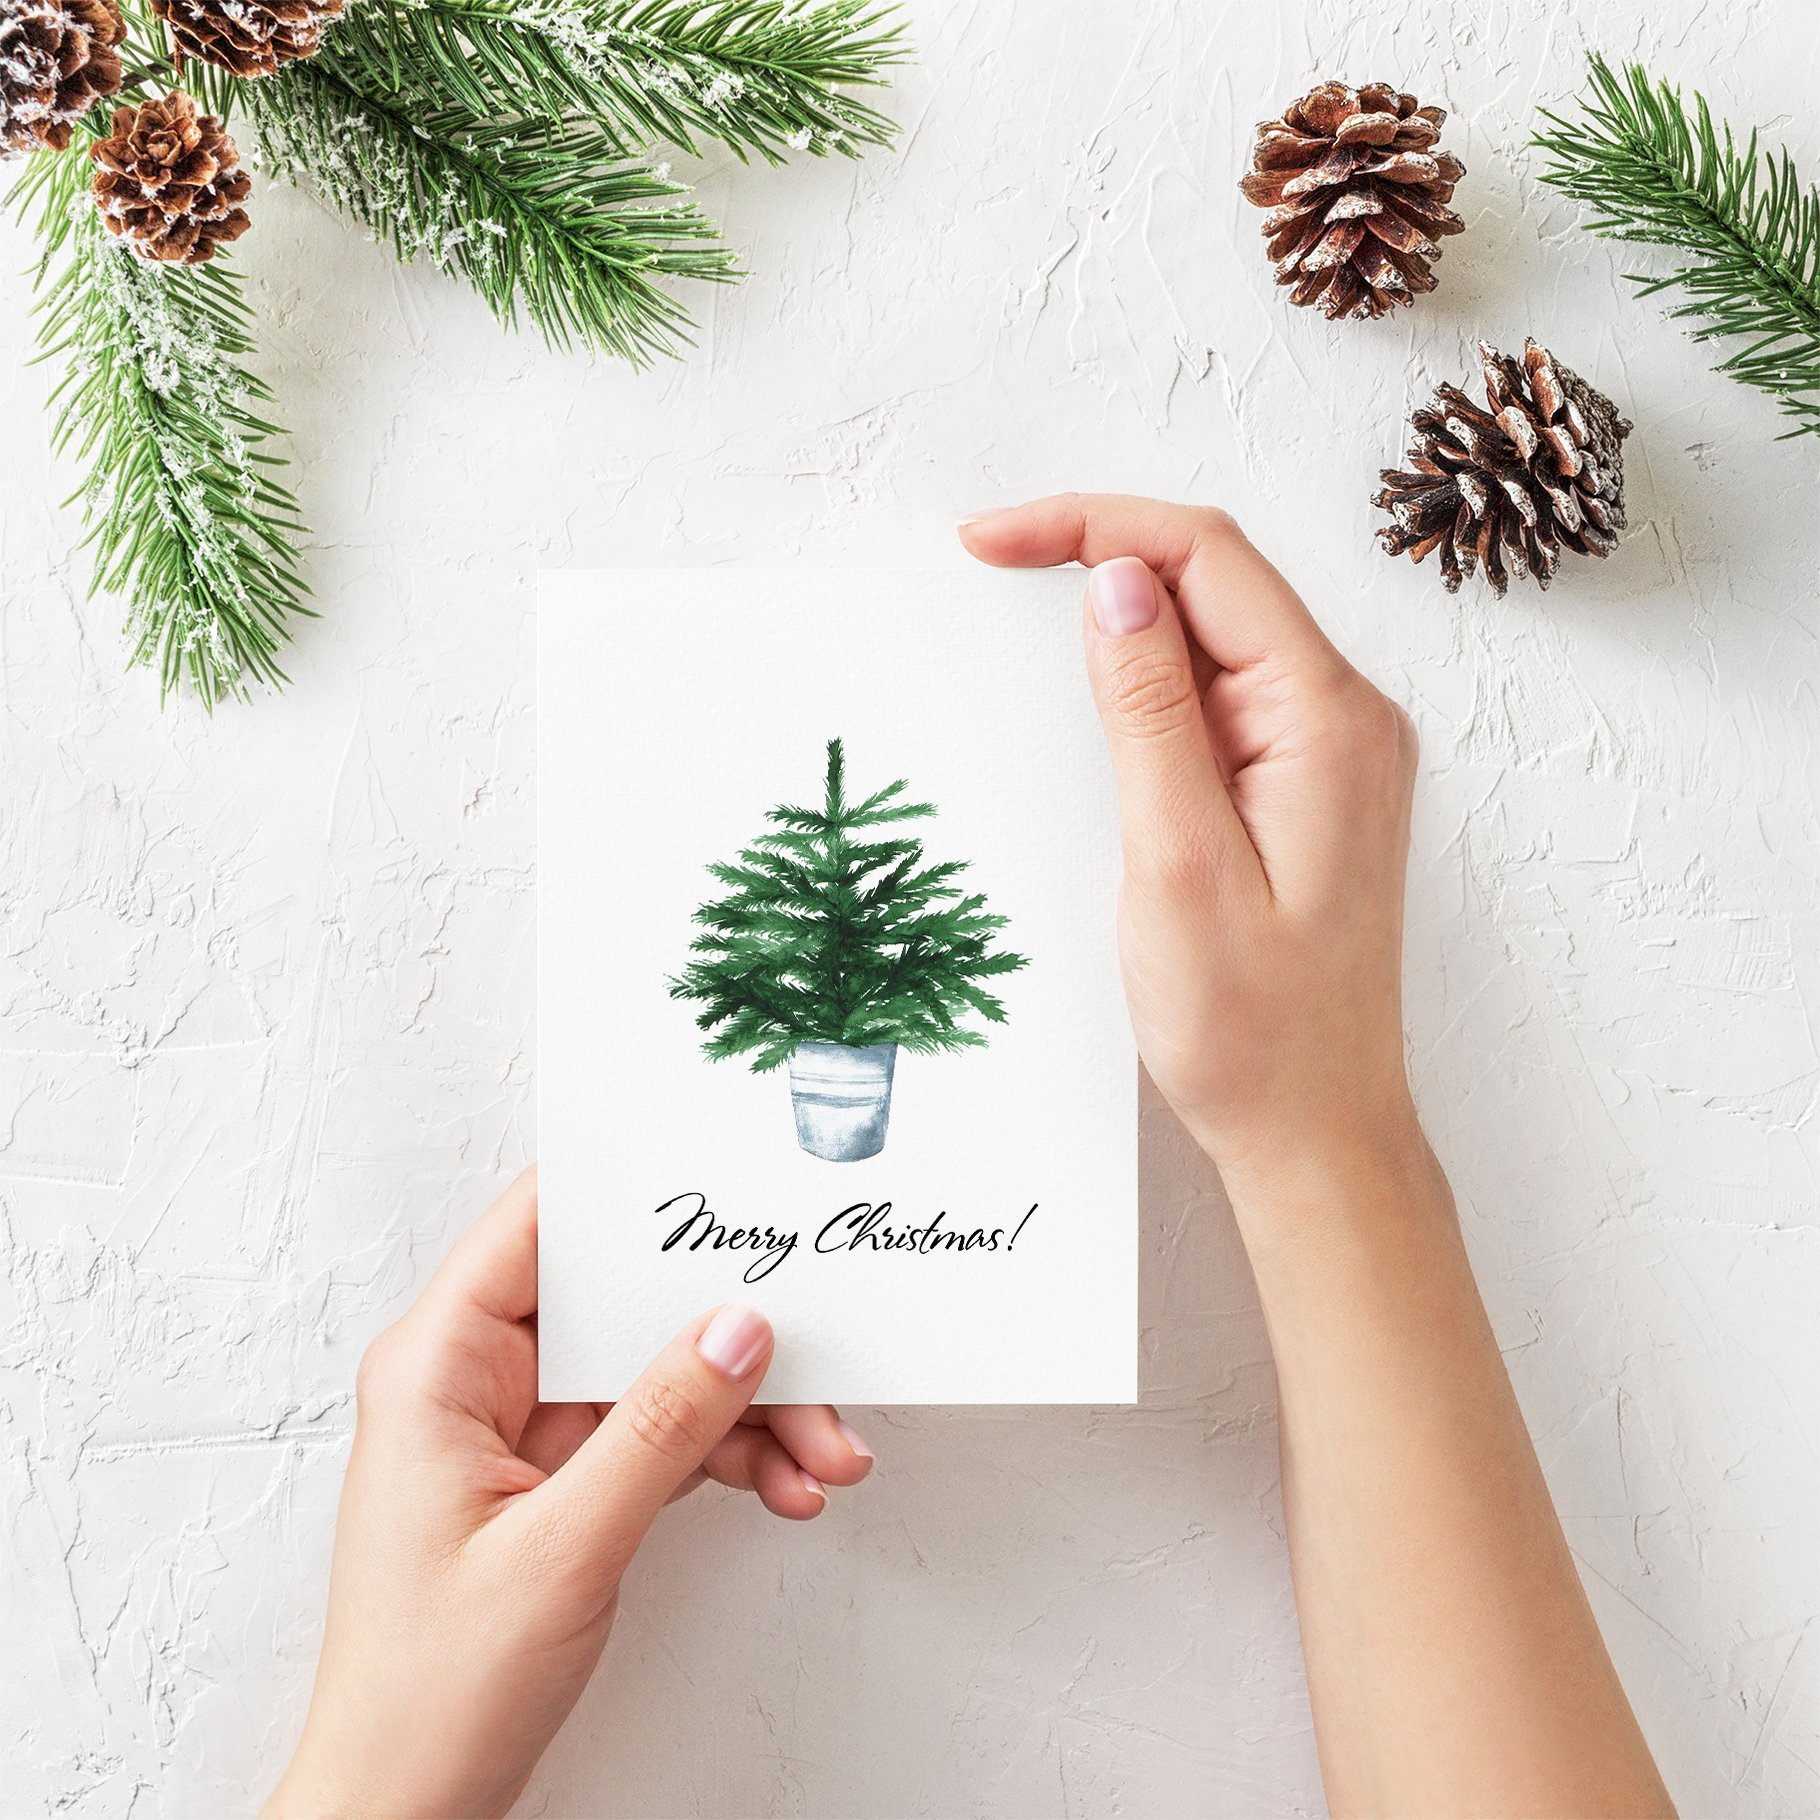 230+ Best Christmas Background Images 2020: Free & Premium - cover 5